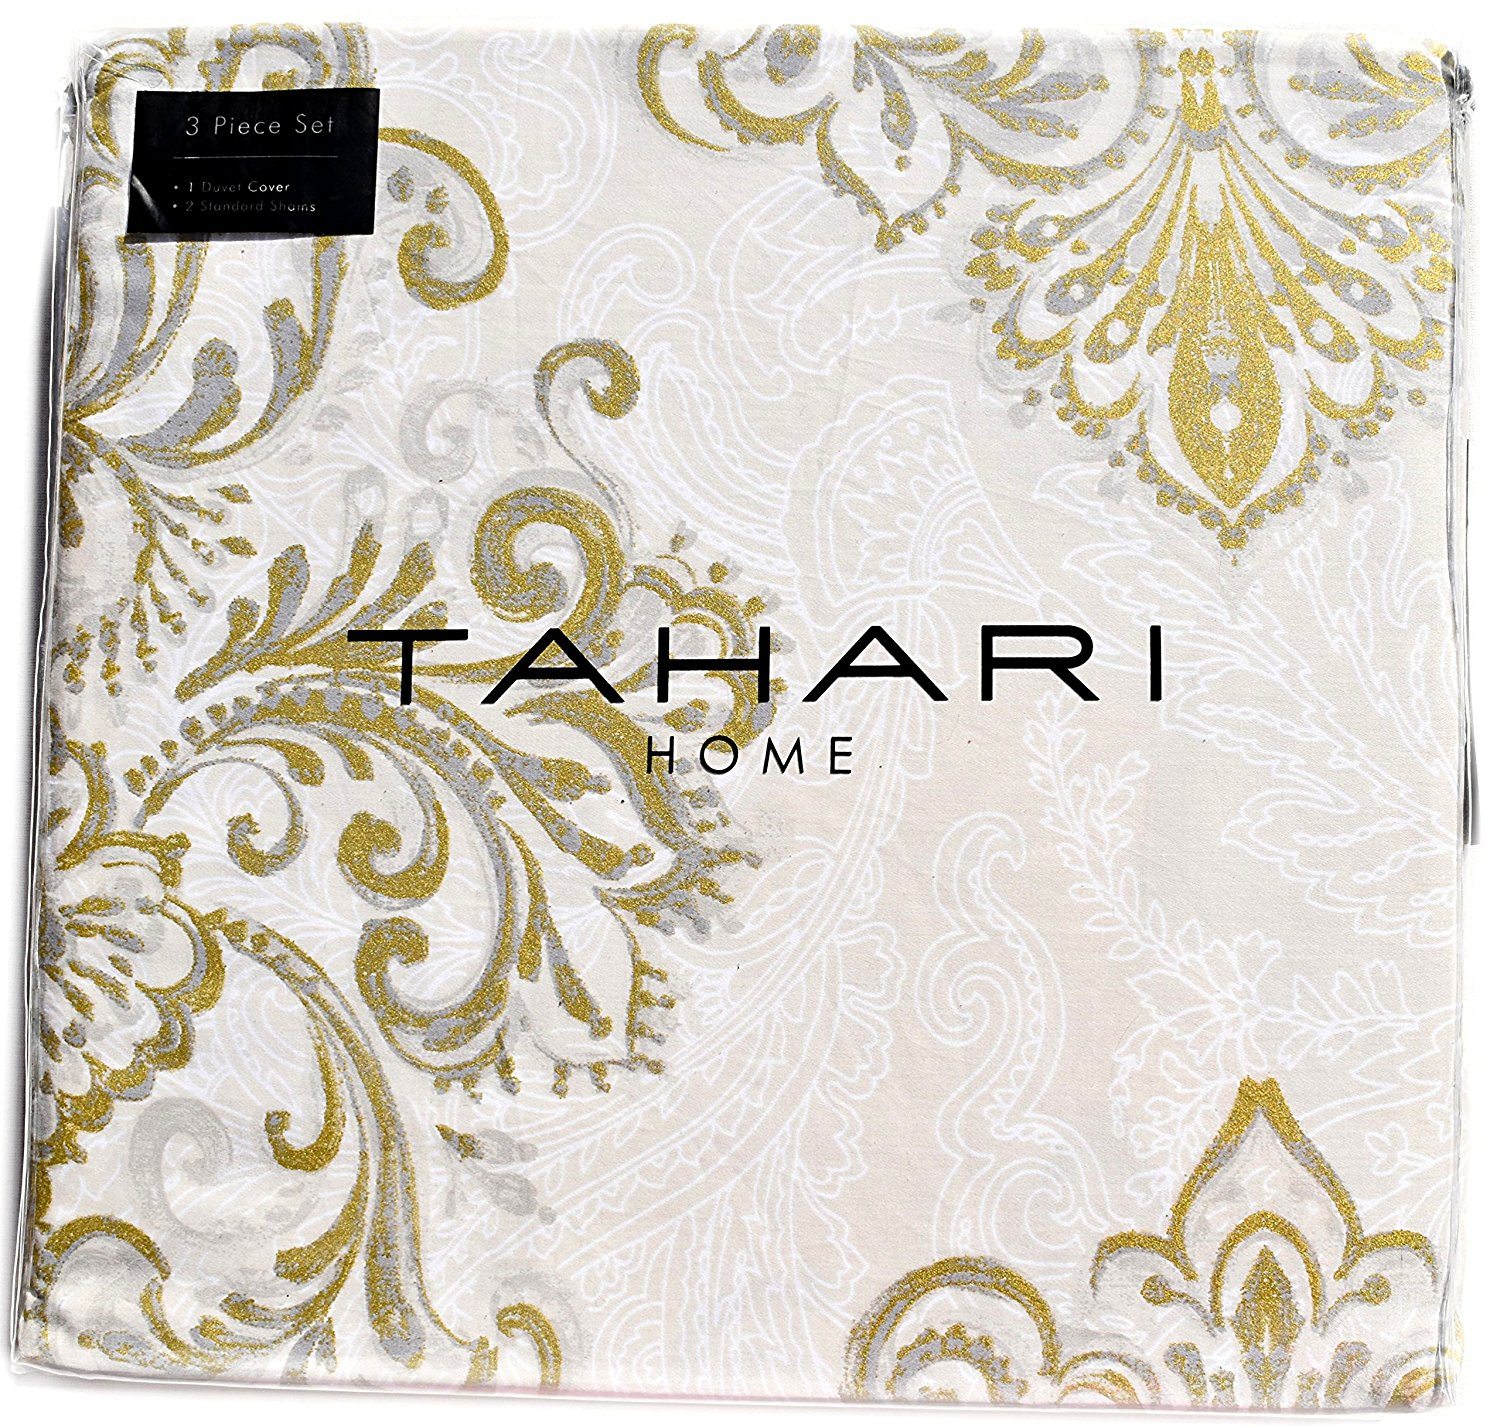 Tahari Home Beige Metallic Gold Grey Ivory Vintage French Damask Paisley Medallions 3pc Full Queen Duvet Cover Set Antique Bothe Style Bohemian